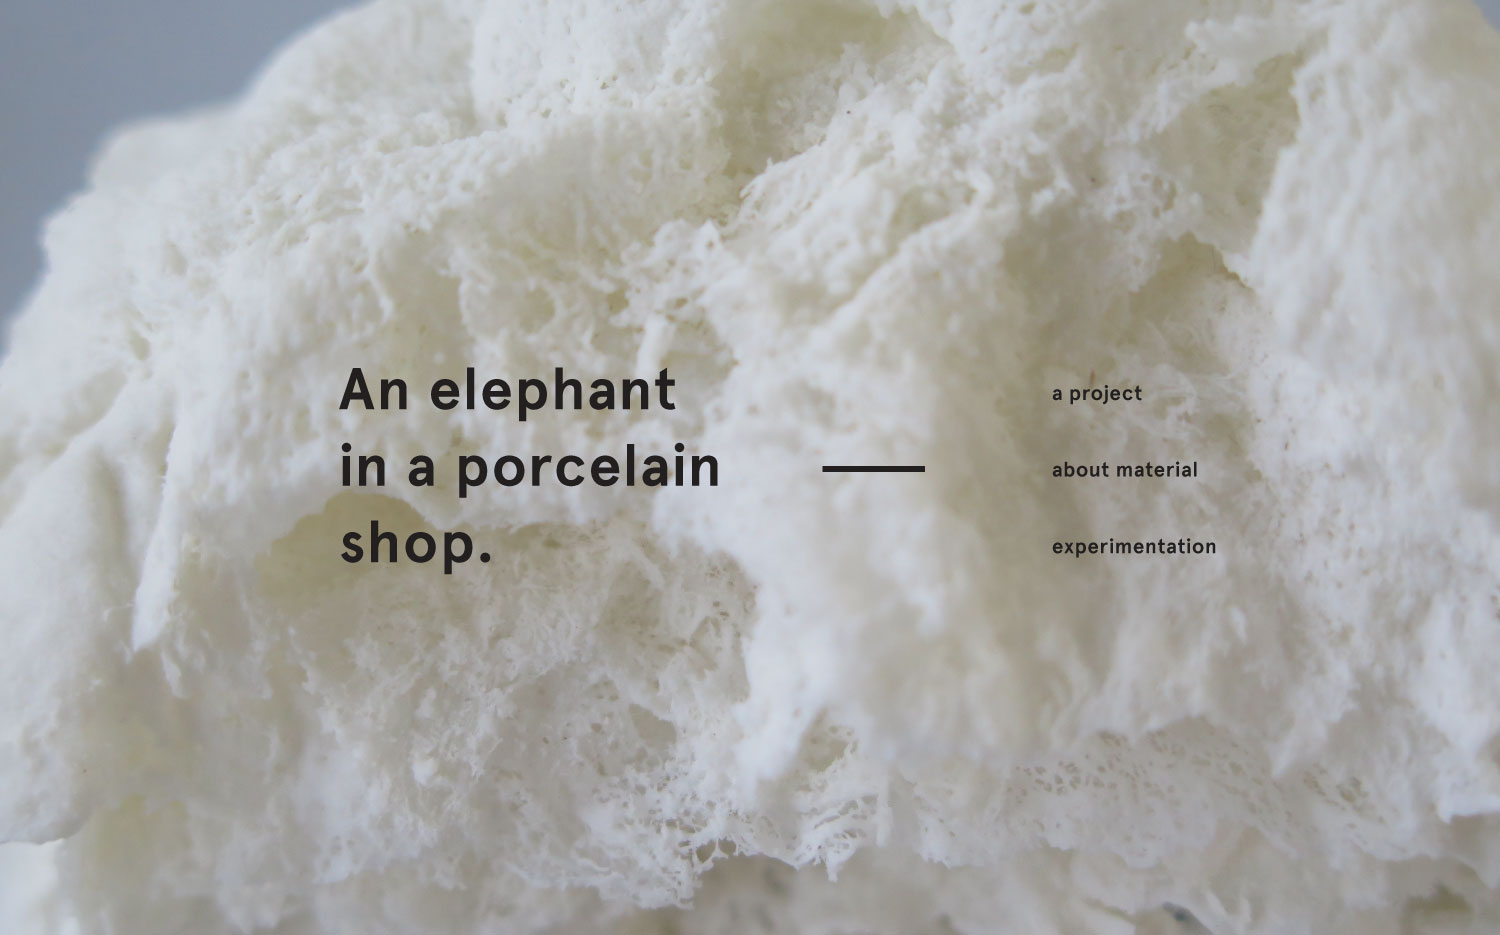 Material exploration with cotton and porcelain